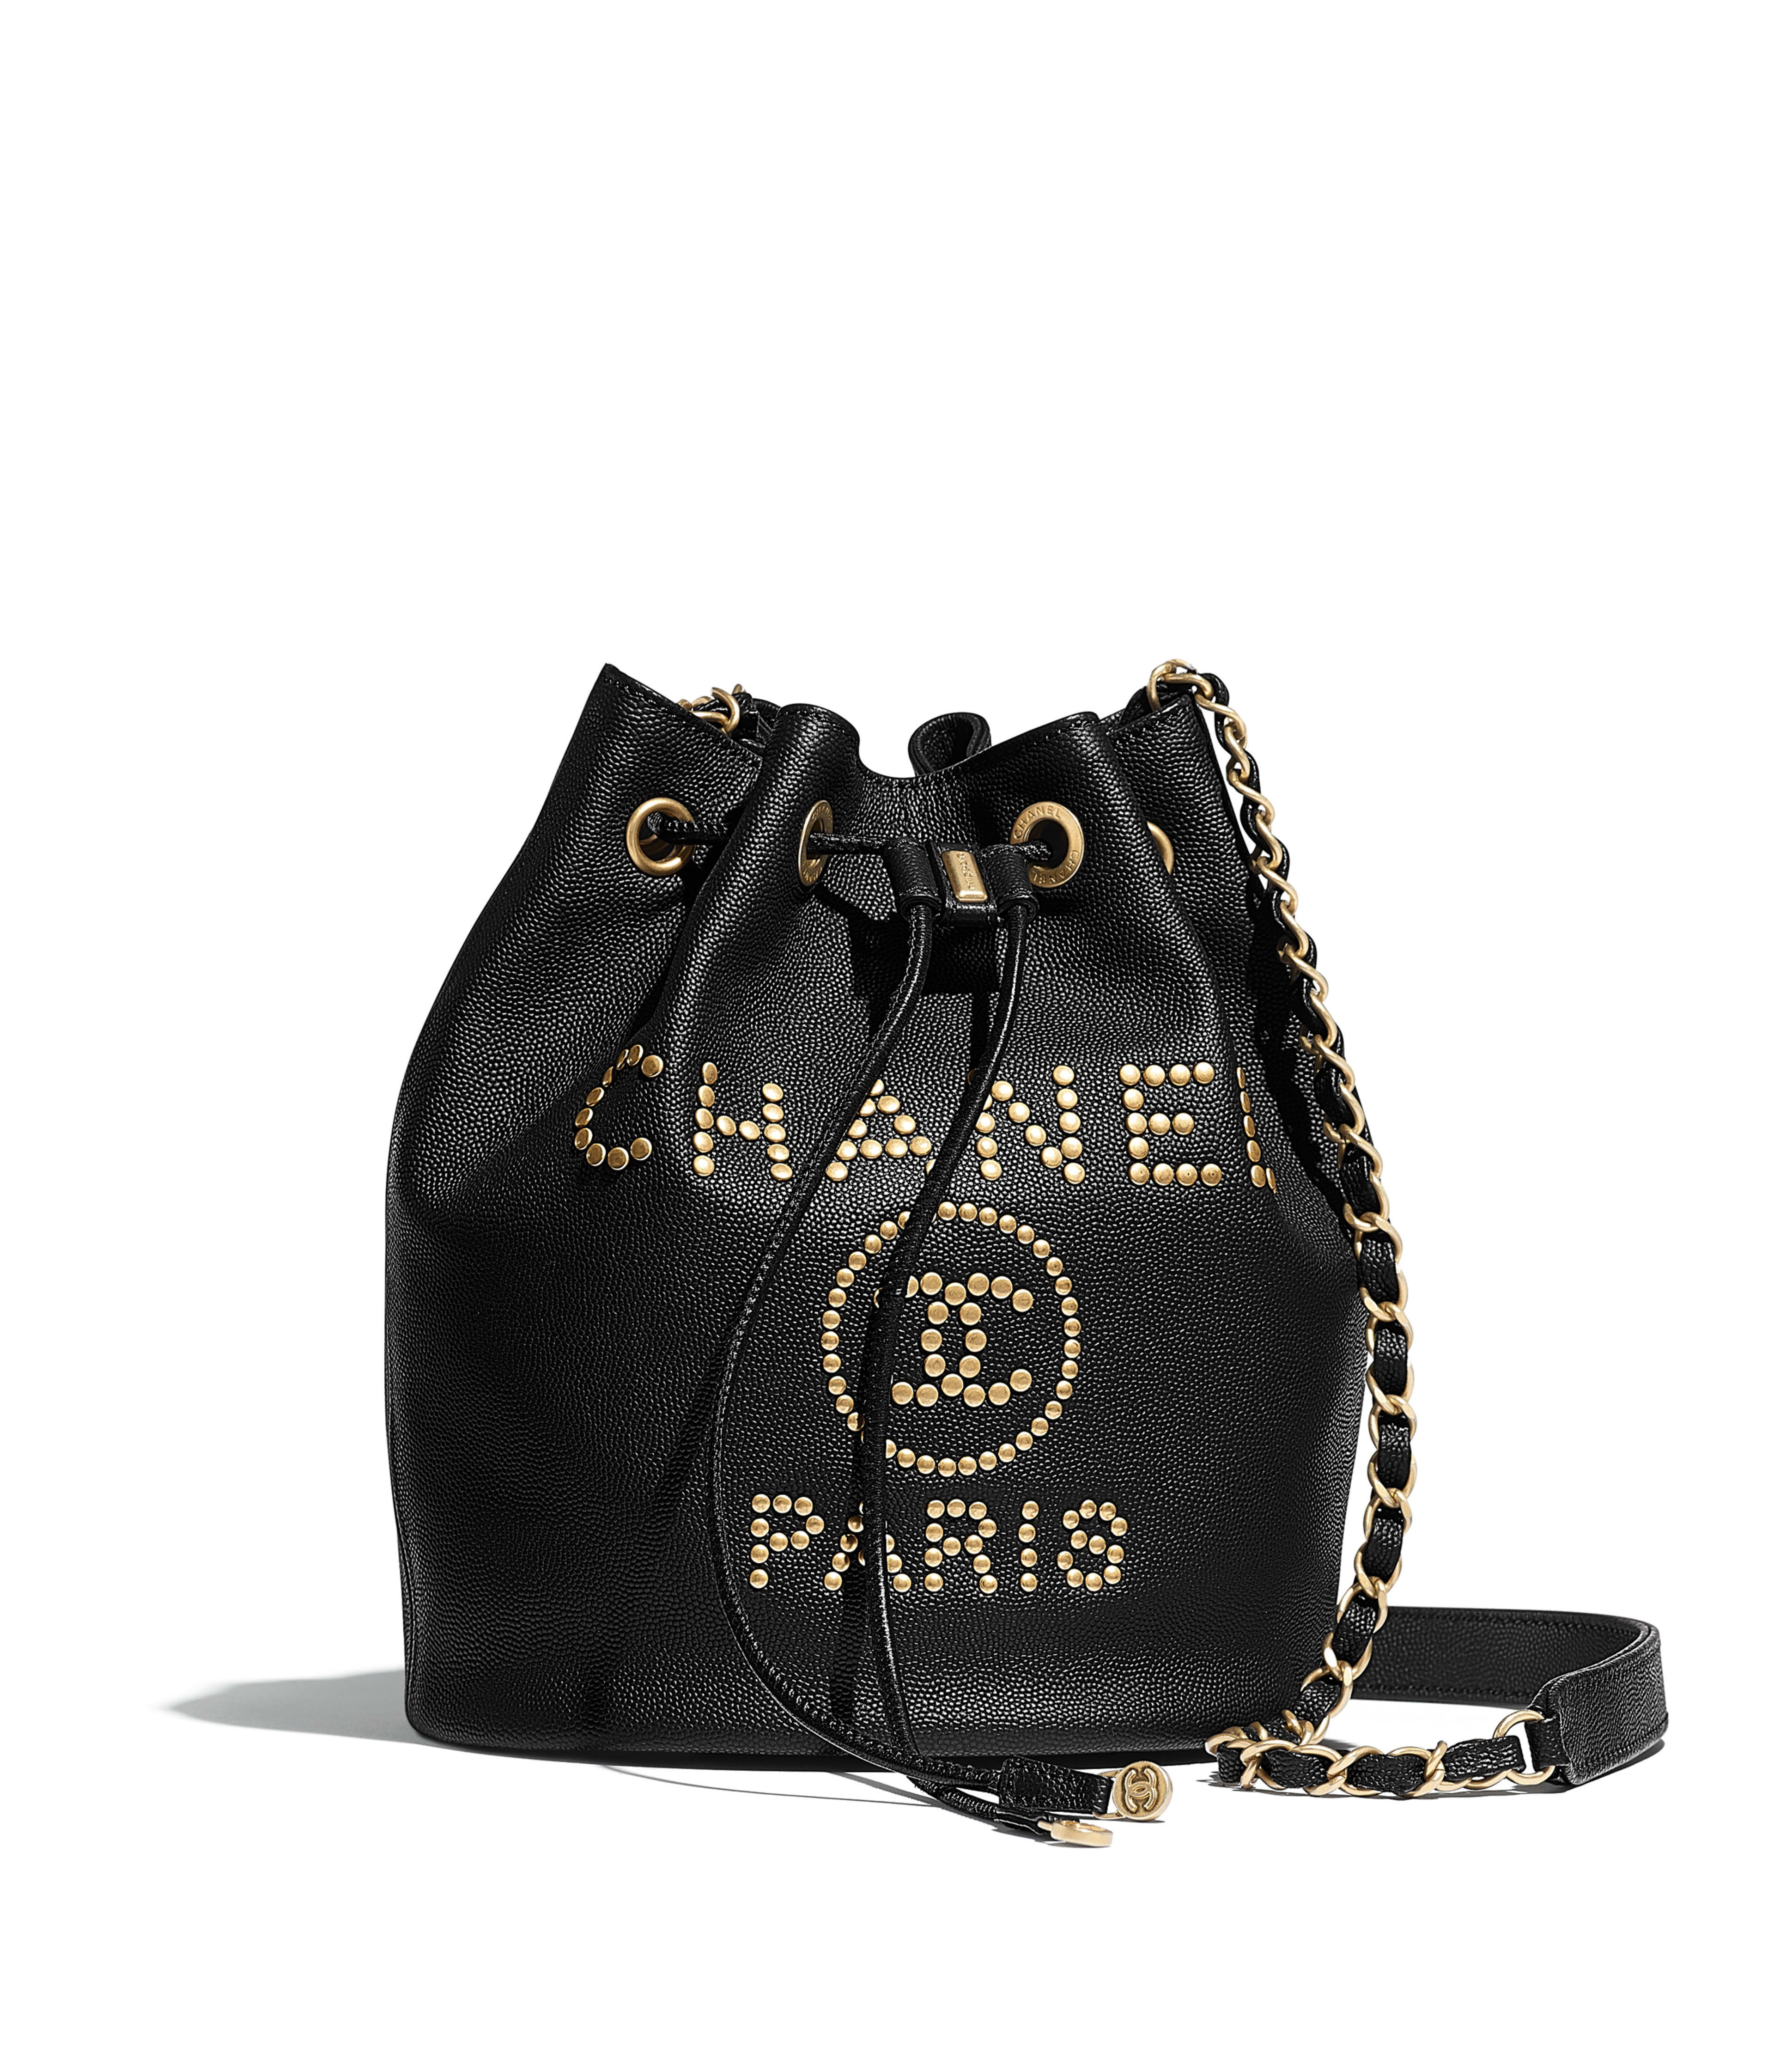 31ff93ae2d0 Handbags - Fashion | CHANEL